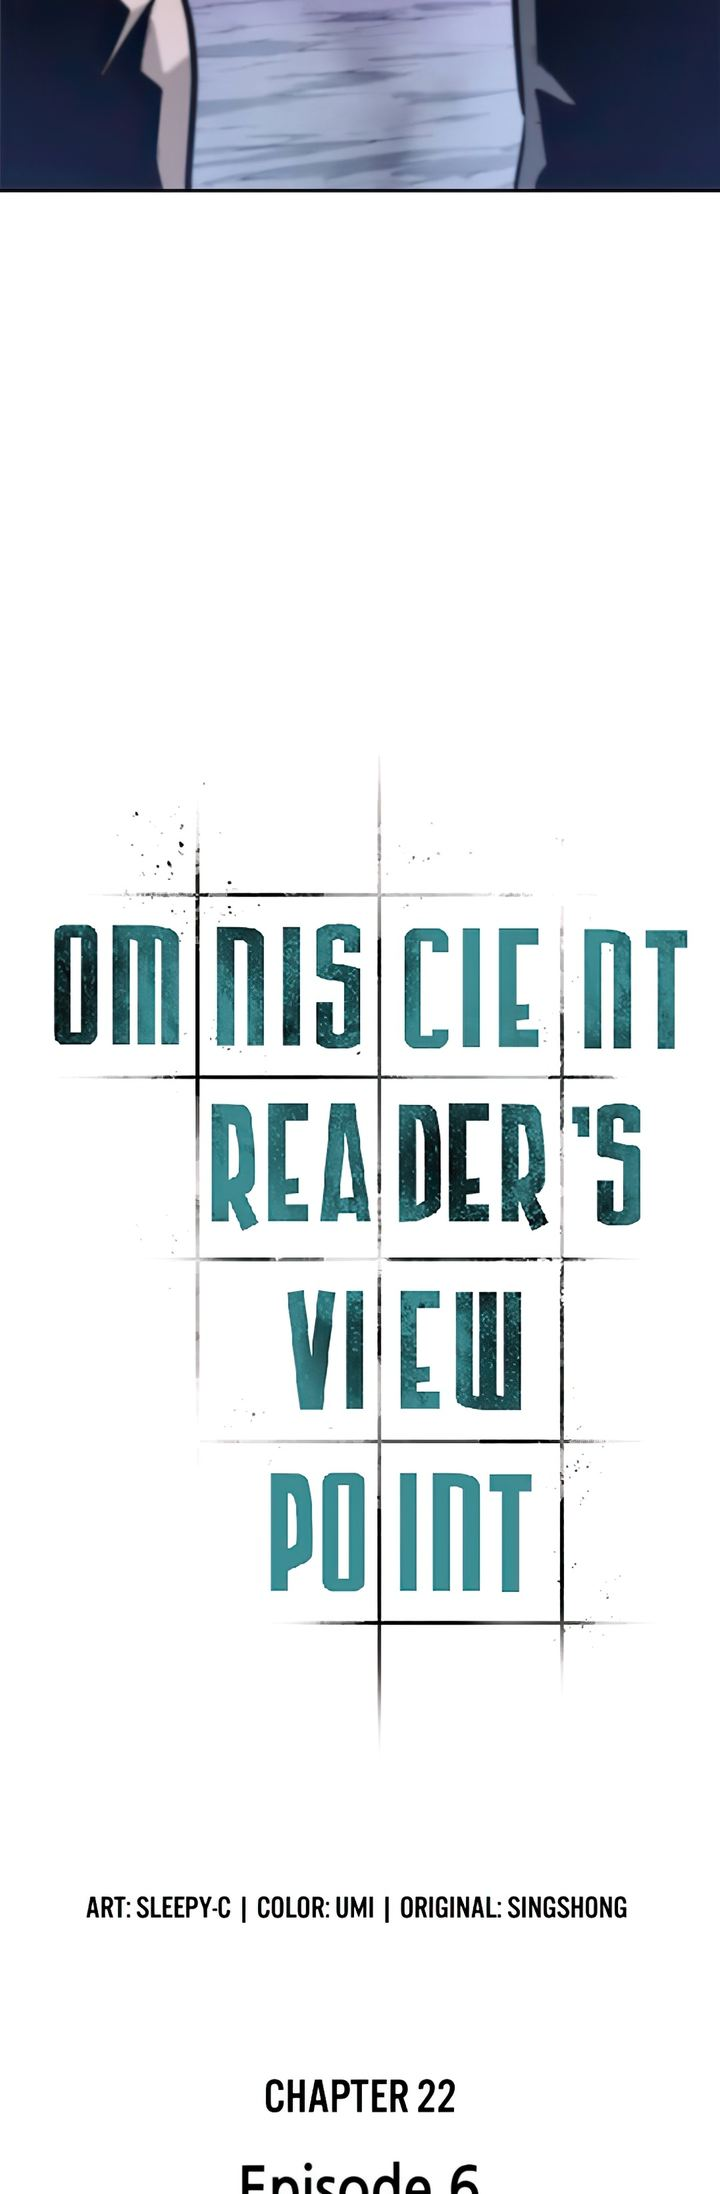 Omniscient Readers Viewpoint 22 16